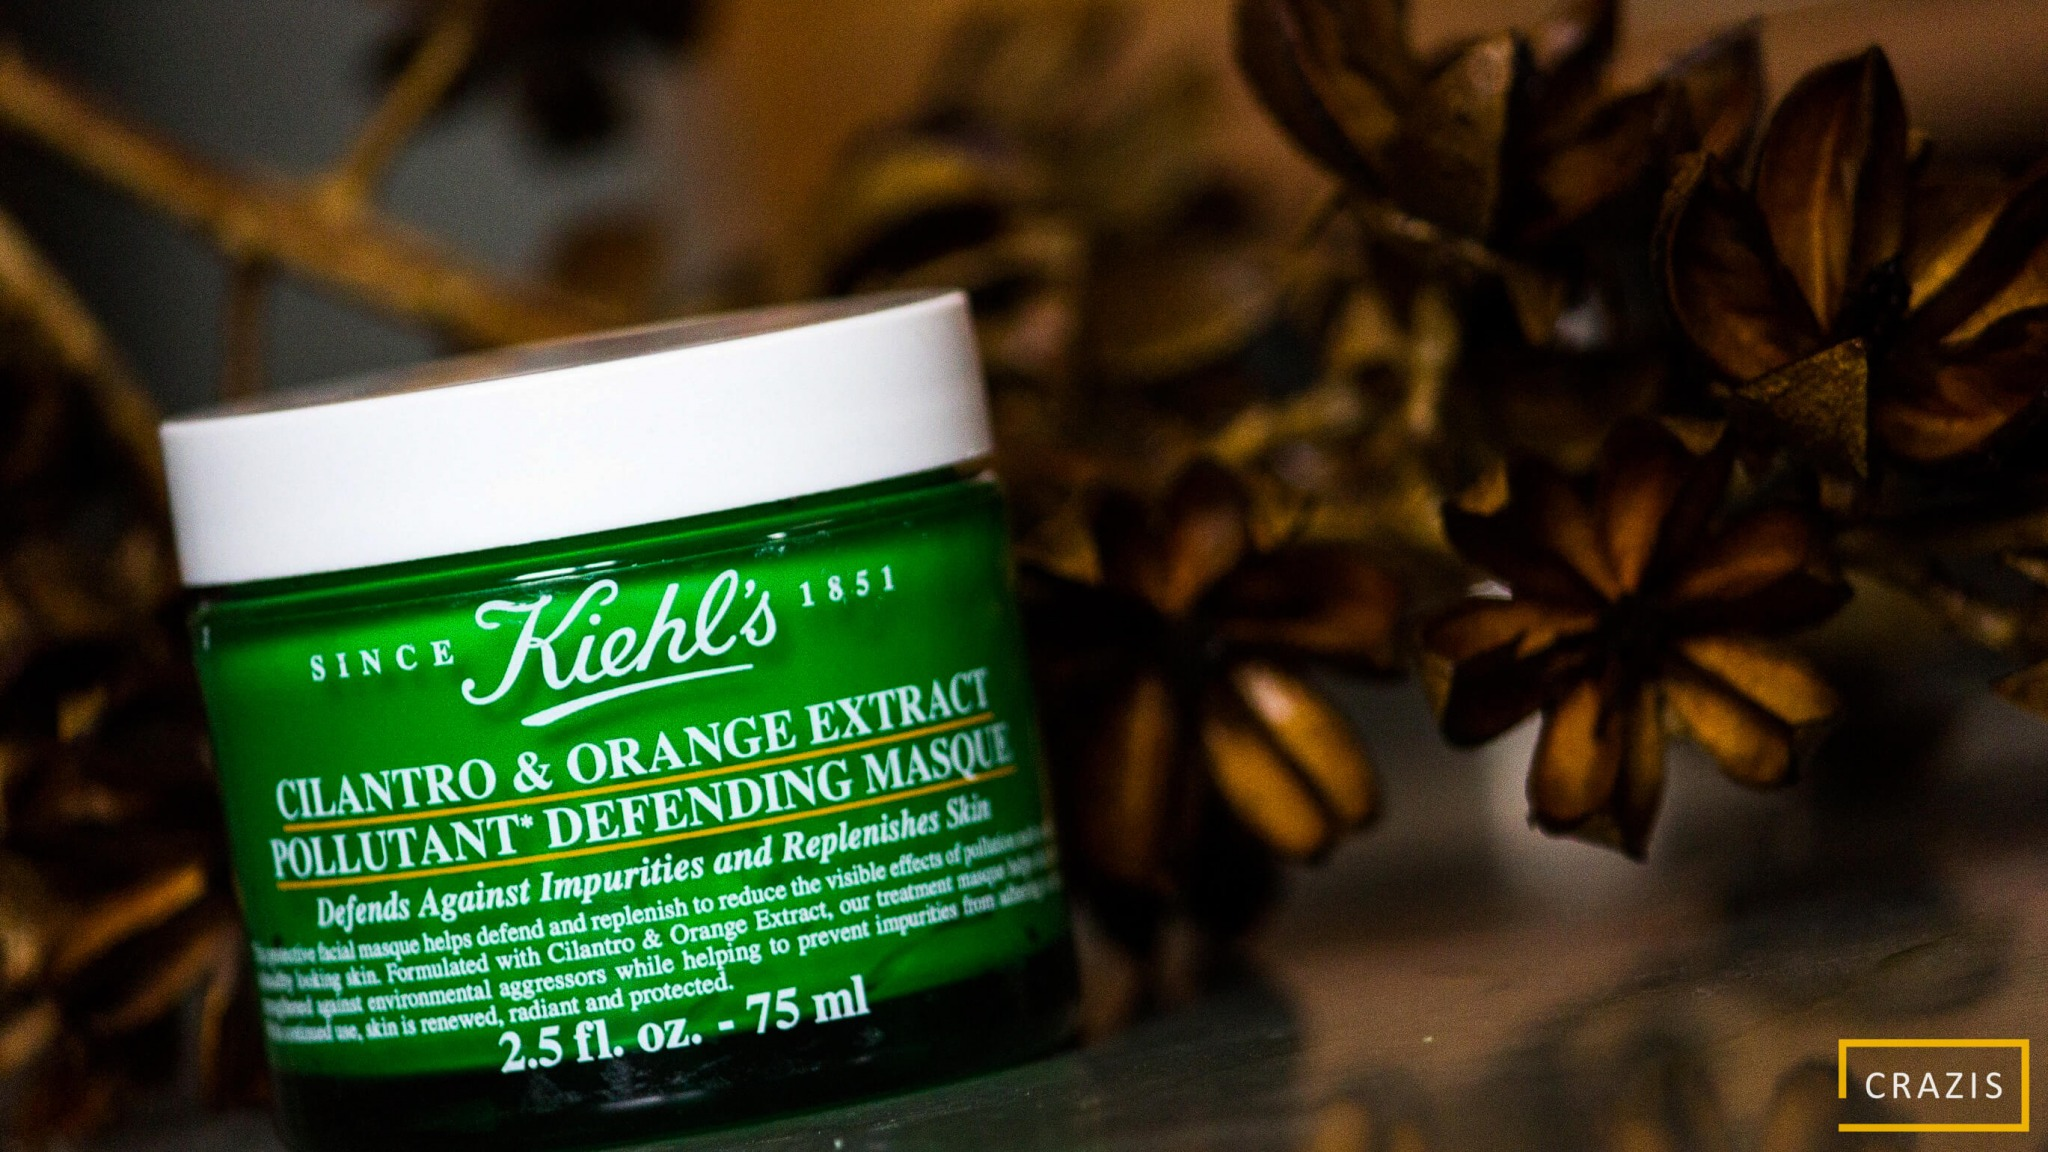 Kiehl's Cilantro & Orange Extract Pollutant Defending